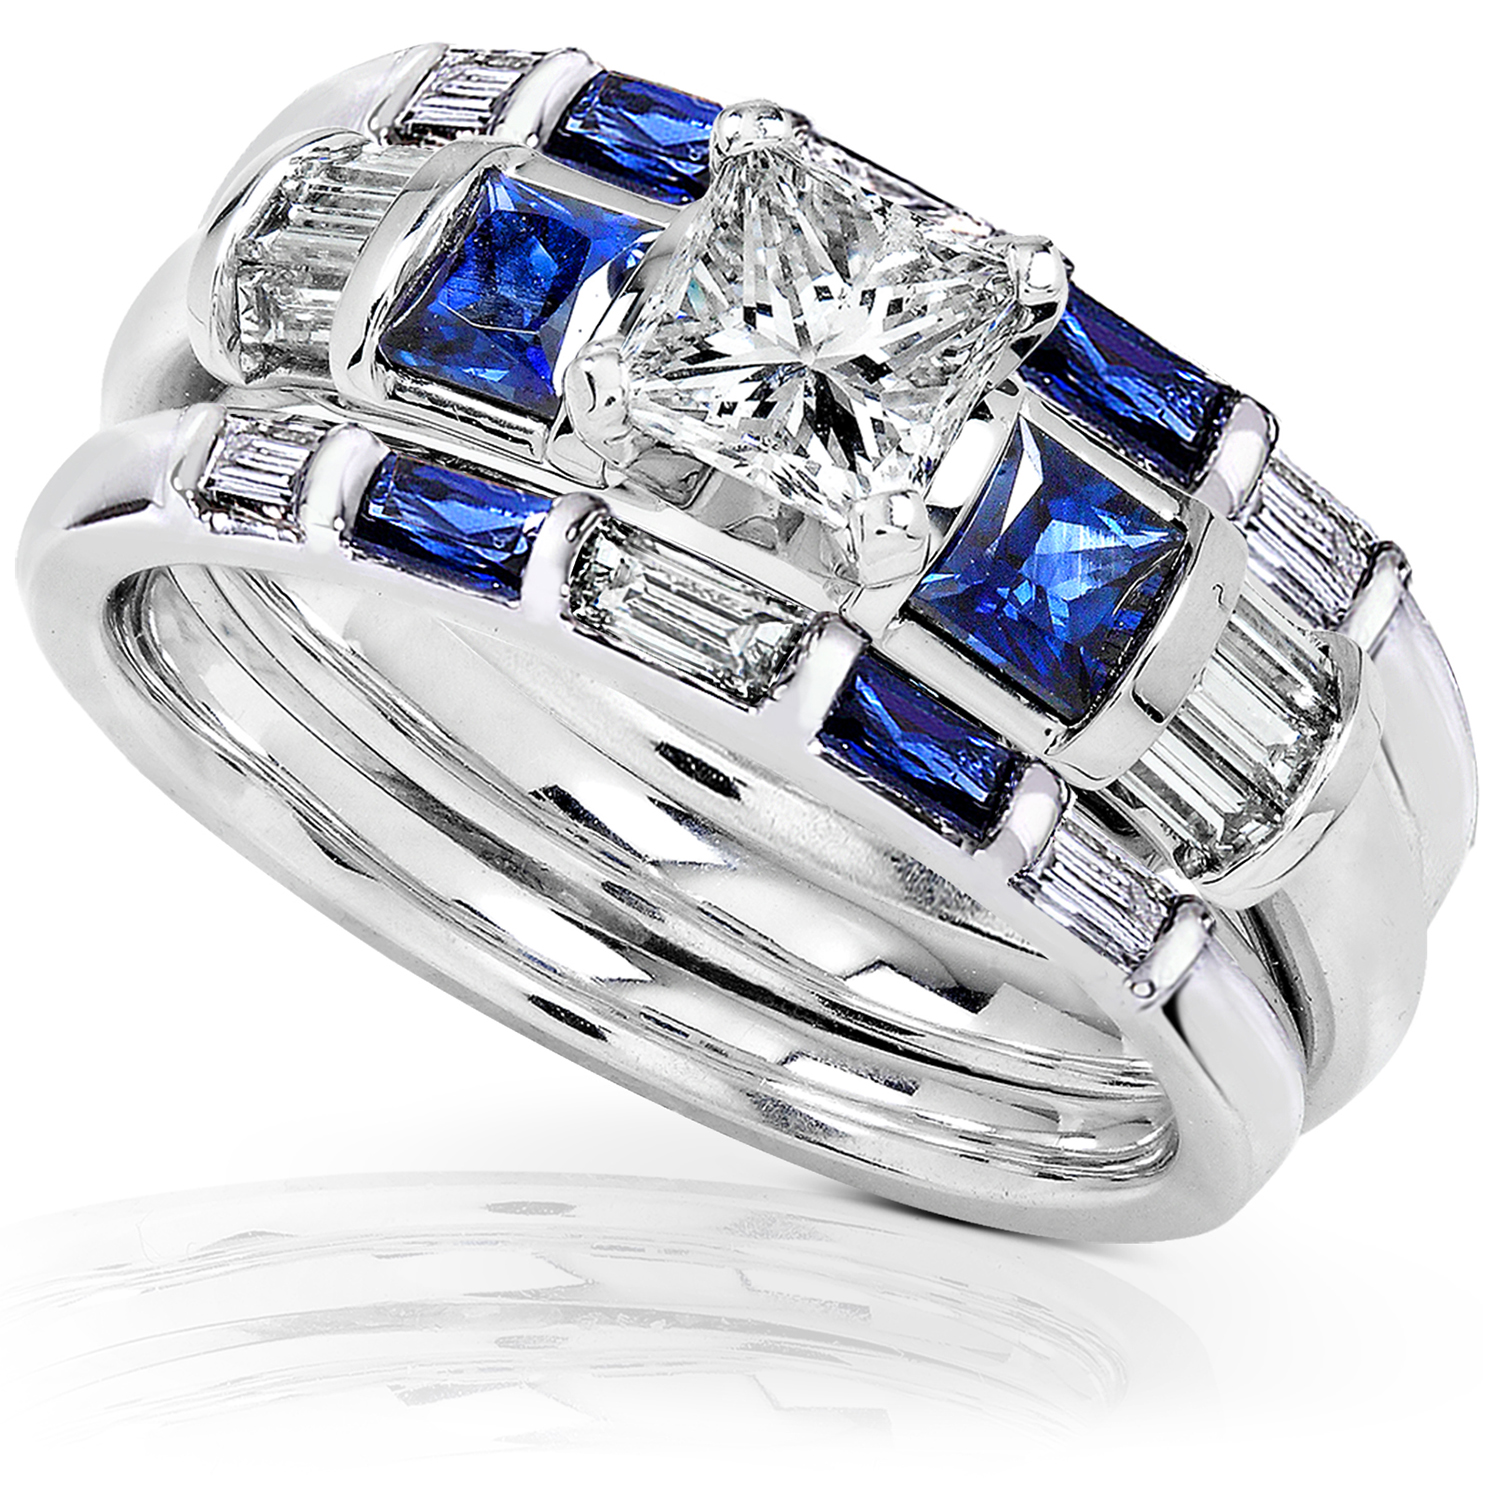 Blue Shire Diamond Wedding Rings Set 1 2 Carat Ctw In 14k